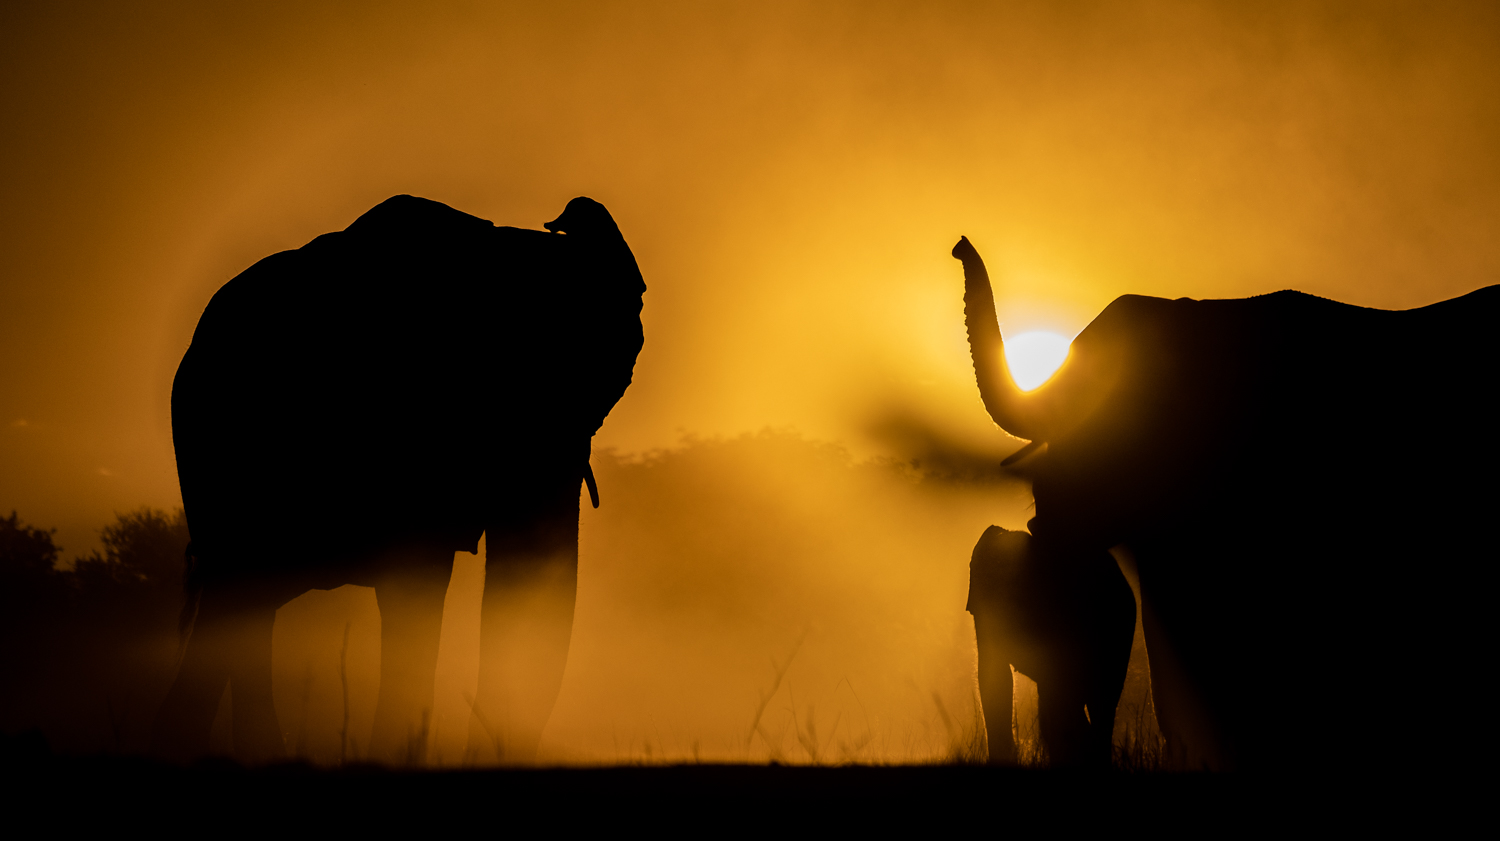 hwange-elephants-1.jpg